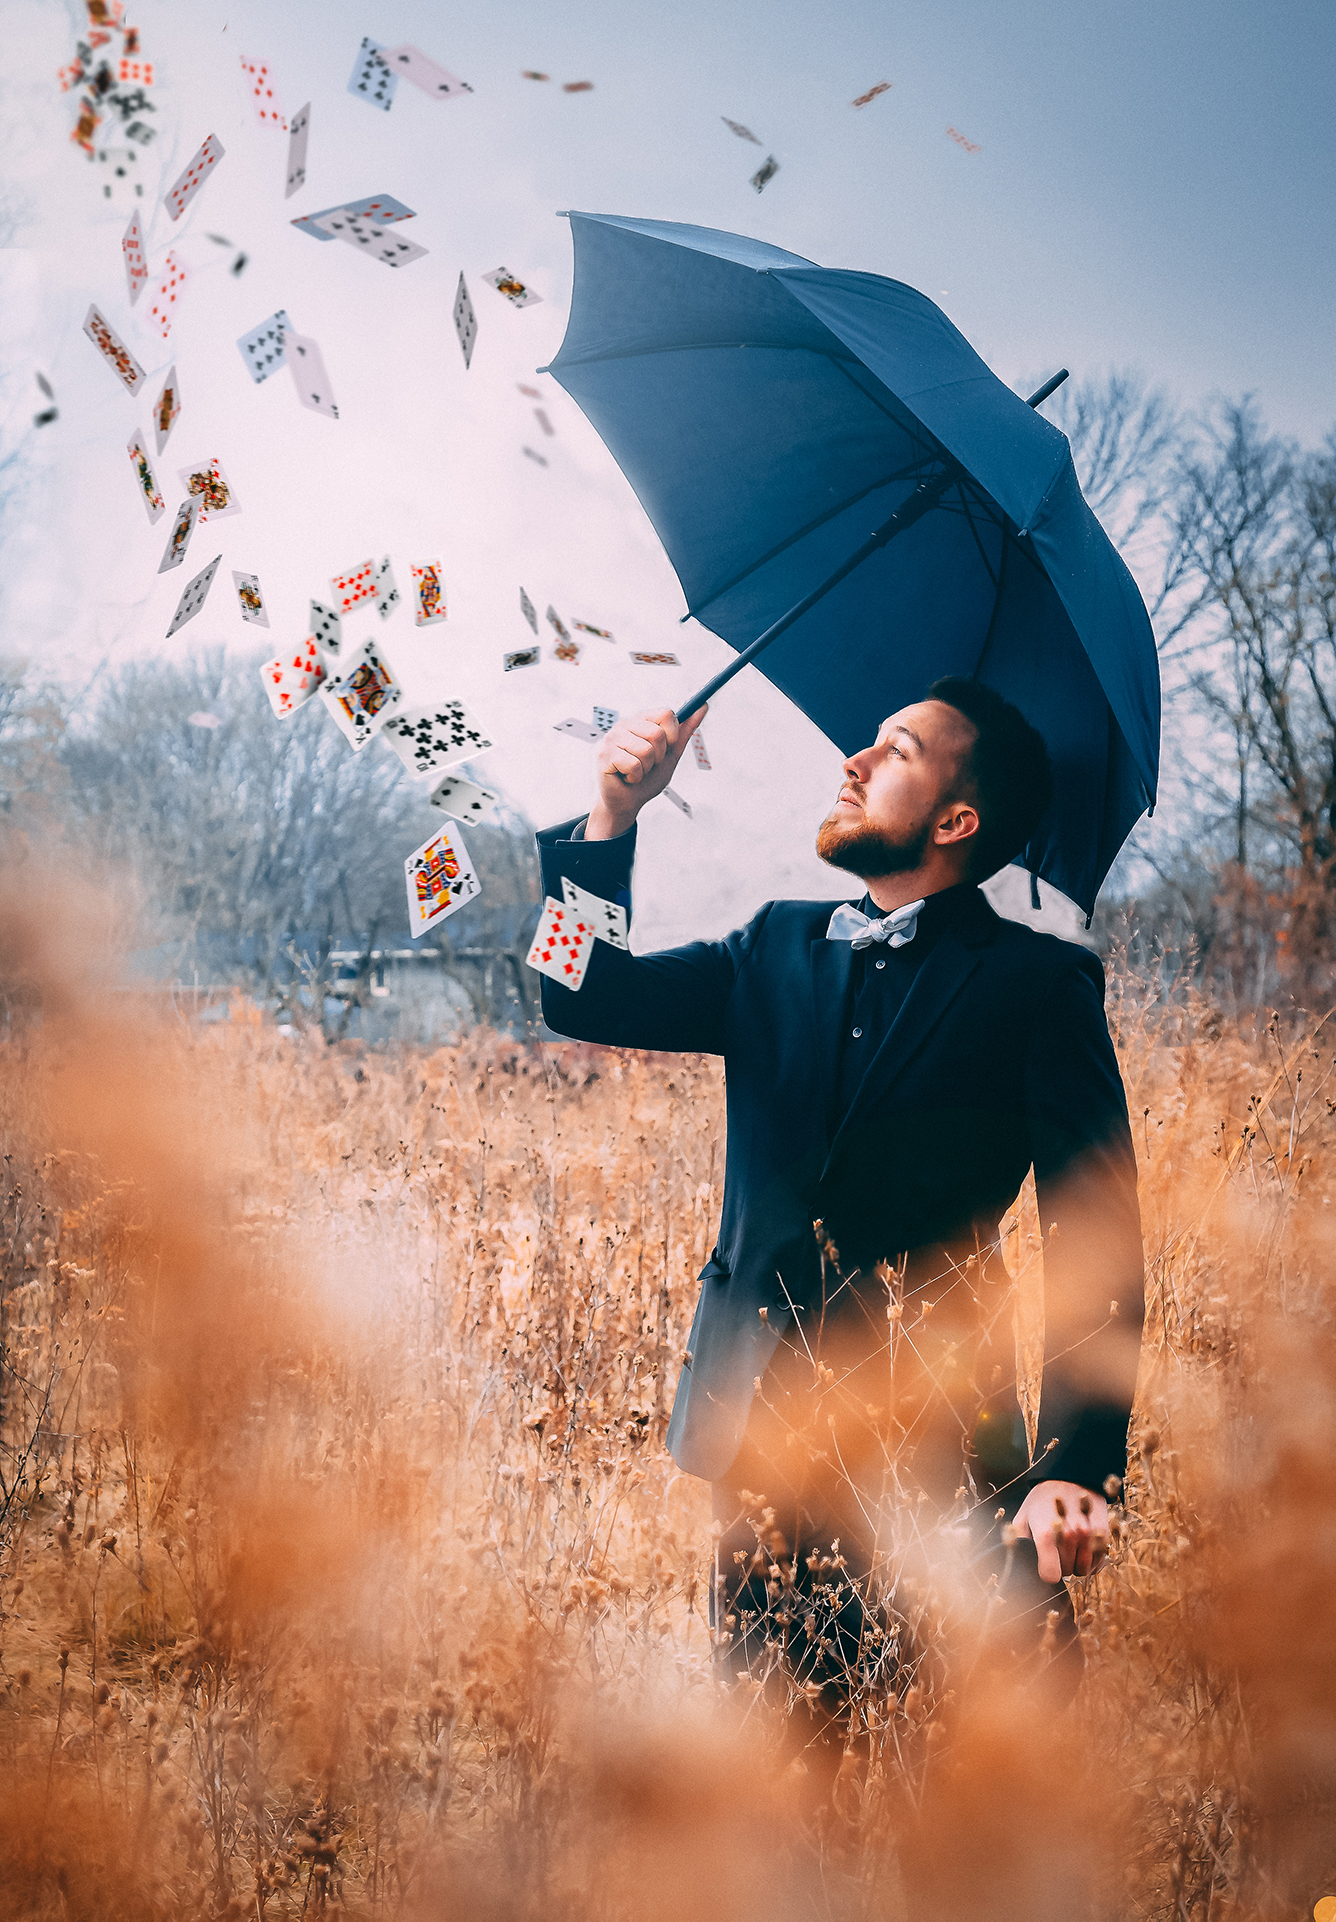 zack esau media photography umbrella playing cards alex kazam bow tie field digital art